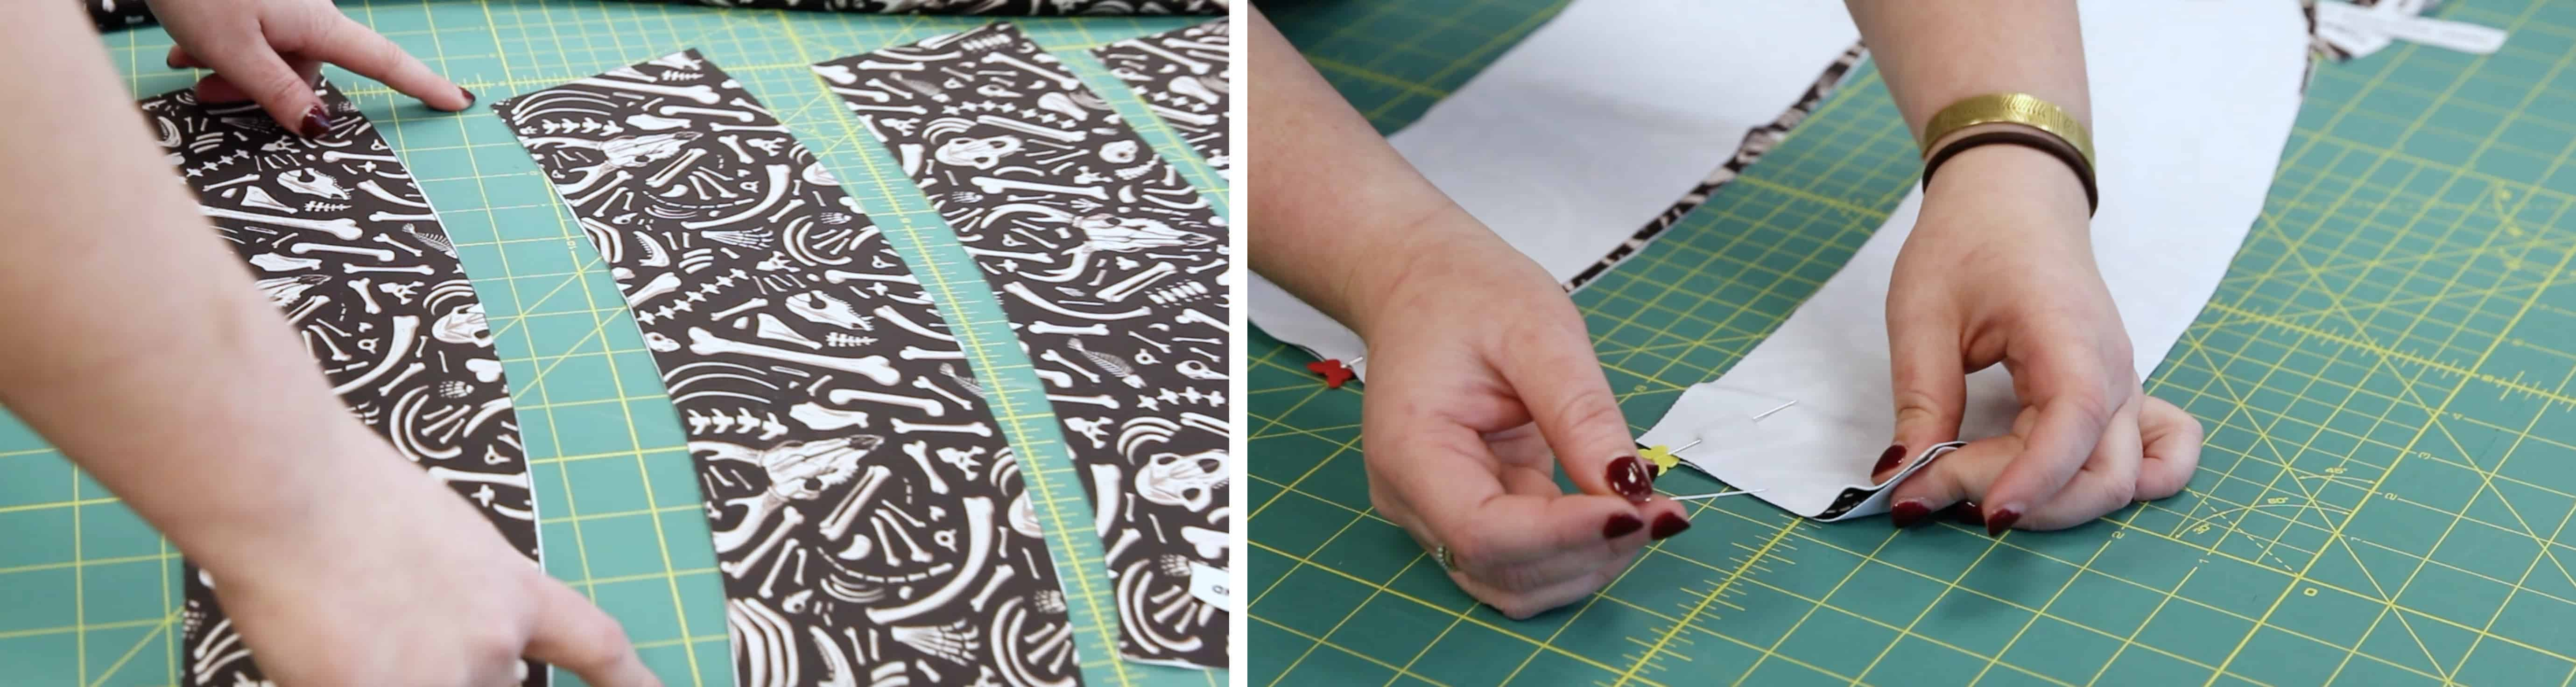 Pinning Waistband pieces in place and sewing together | Spoonflower Blog